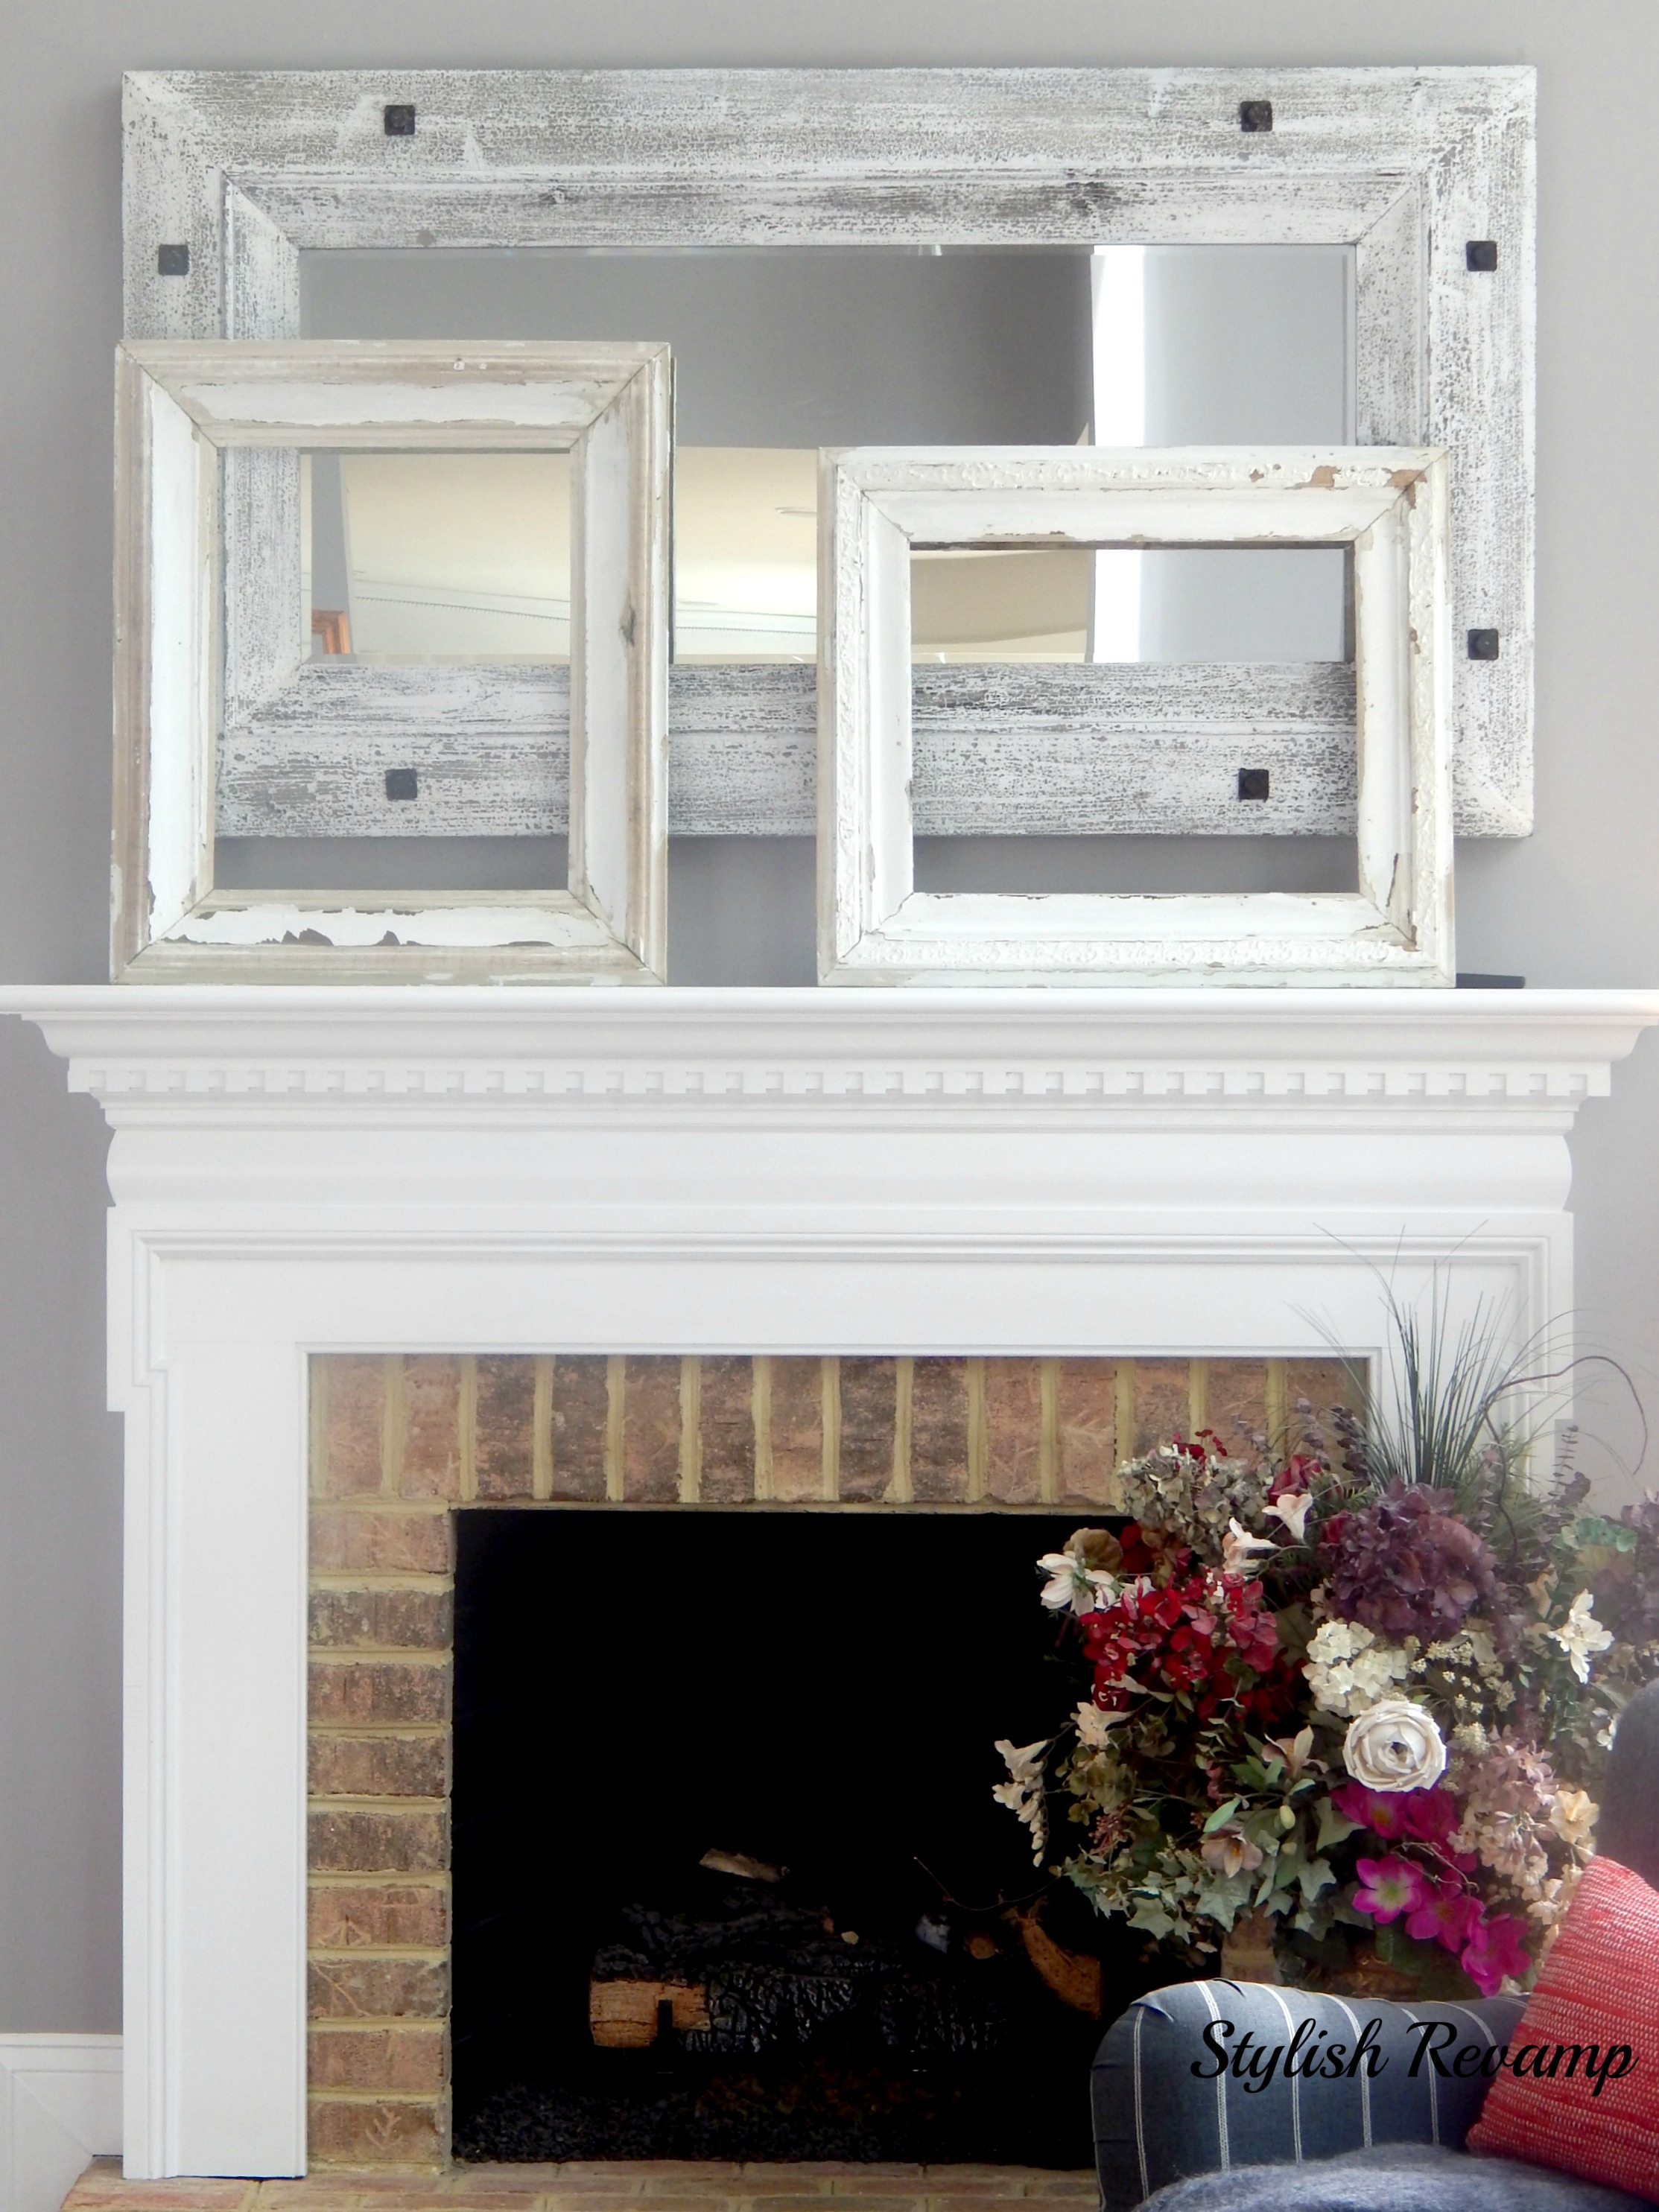 Fireplace mantel with thrift shop finds1